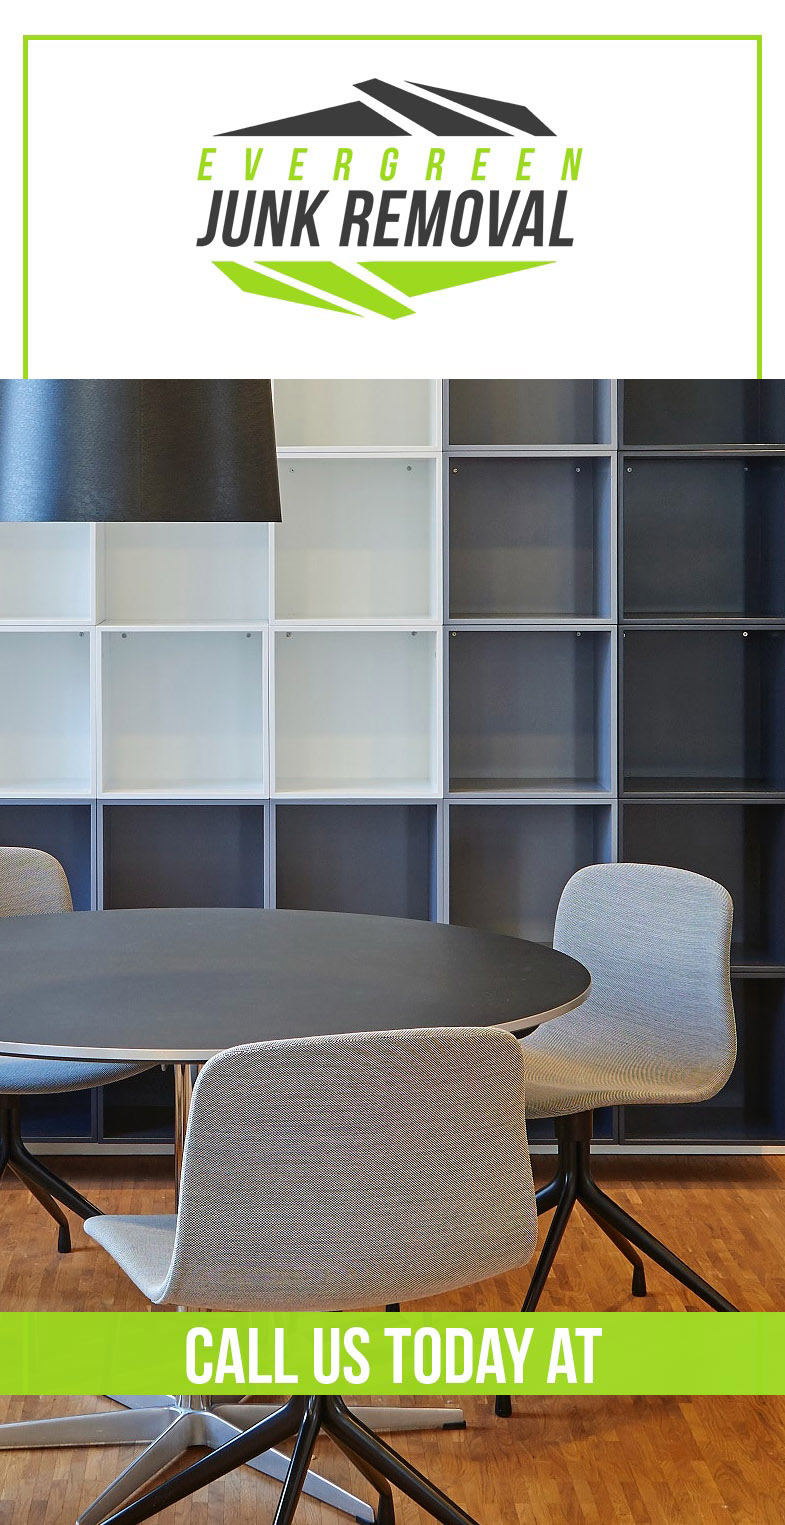 Office Cleaning Services West Palm Beach FL